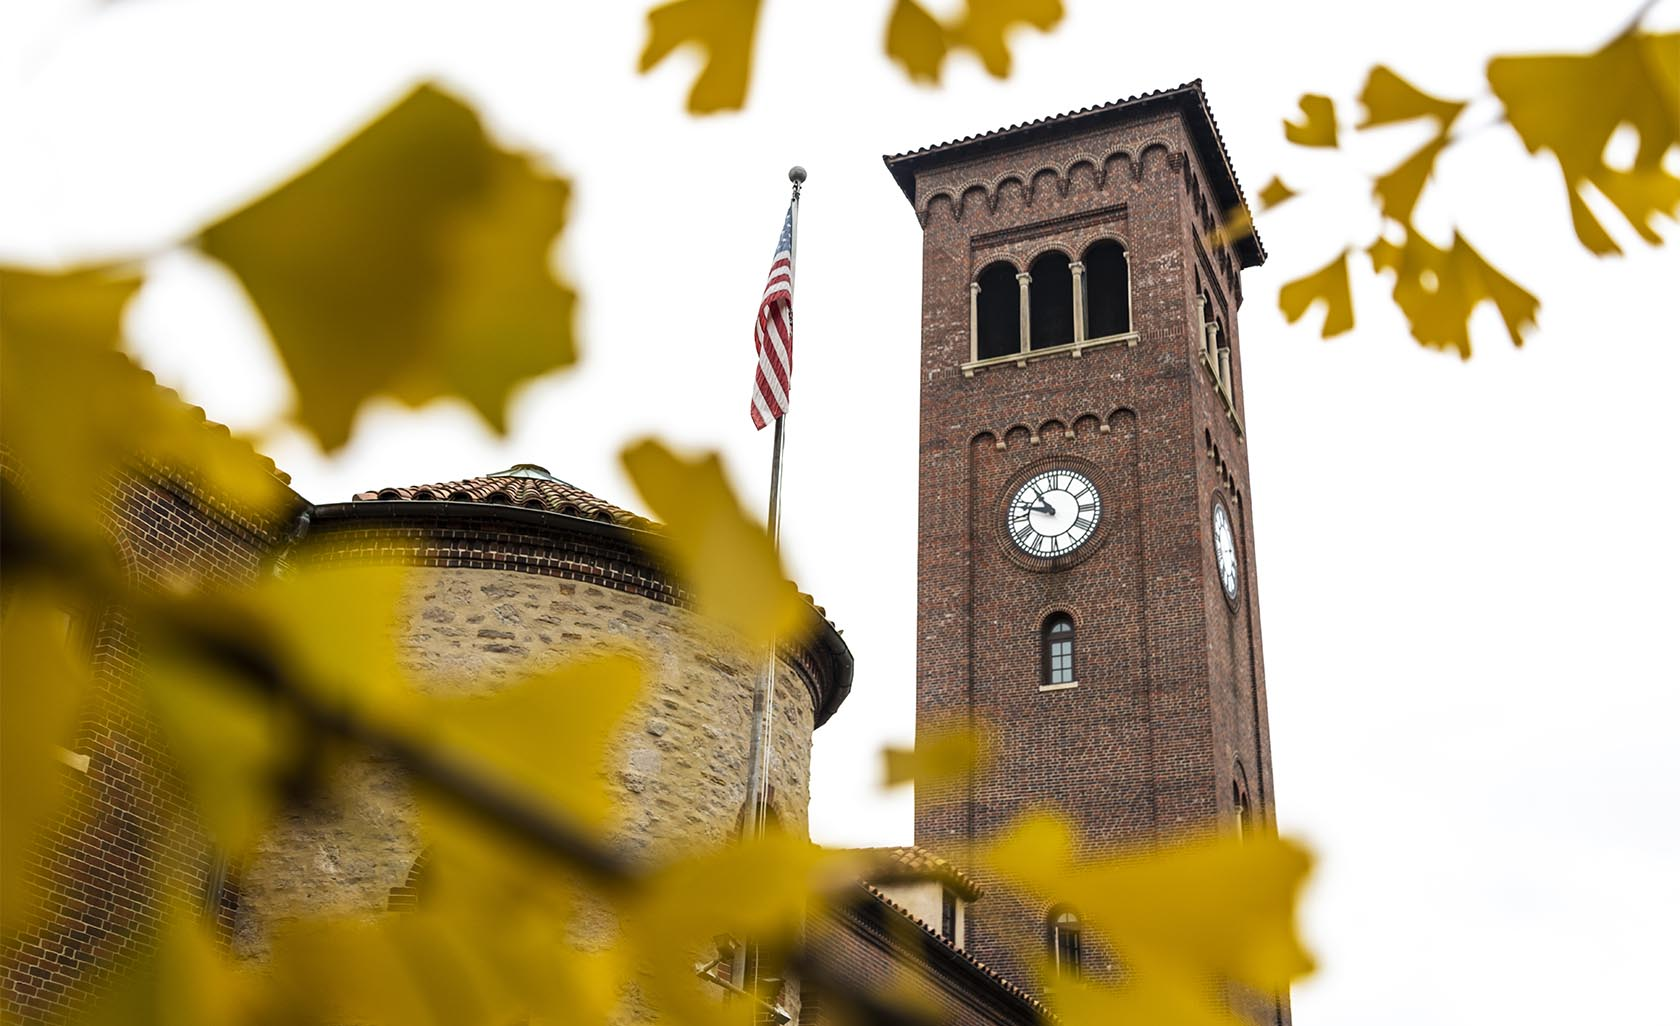 hitoric clock tower in mariemont